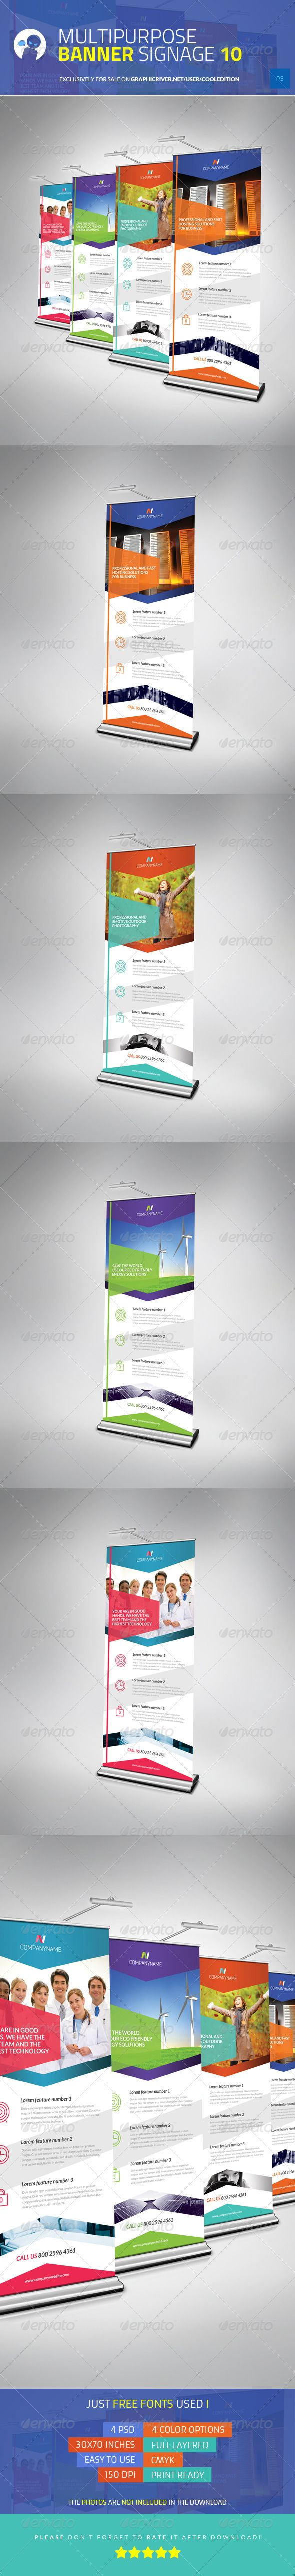 Multipurpose Banner Signage 10 — Photoshop PSD #signage #info • Available here → https://graphicriver.net/item/multipurpose-banner-signage-10/5633383?ref=pxcr